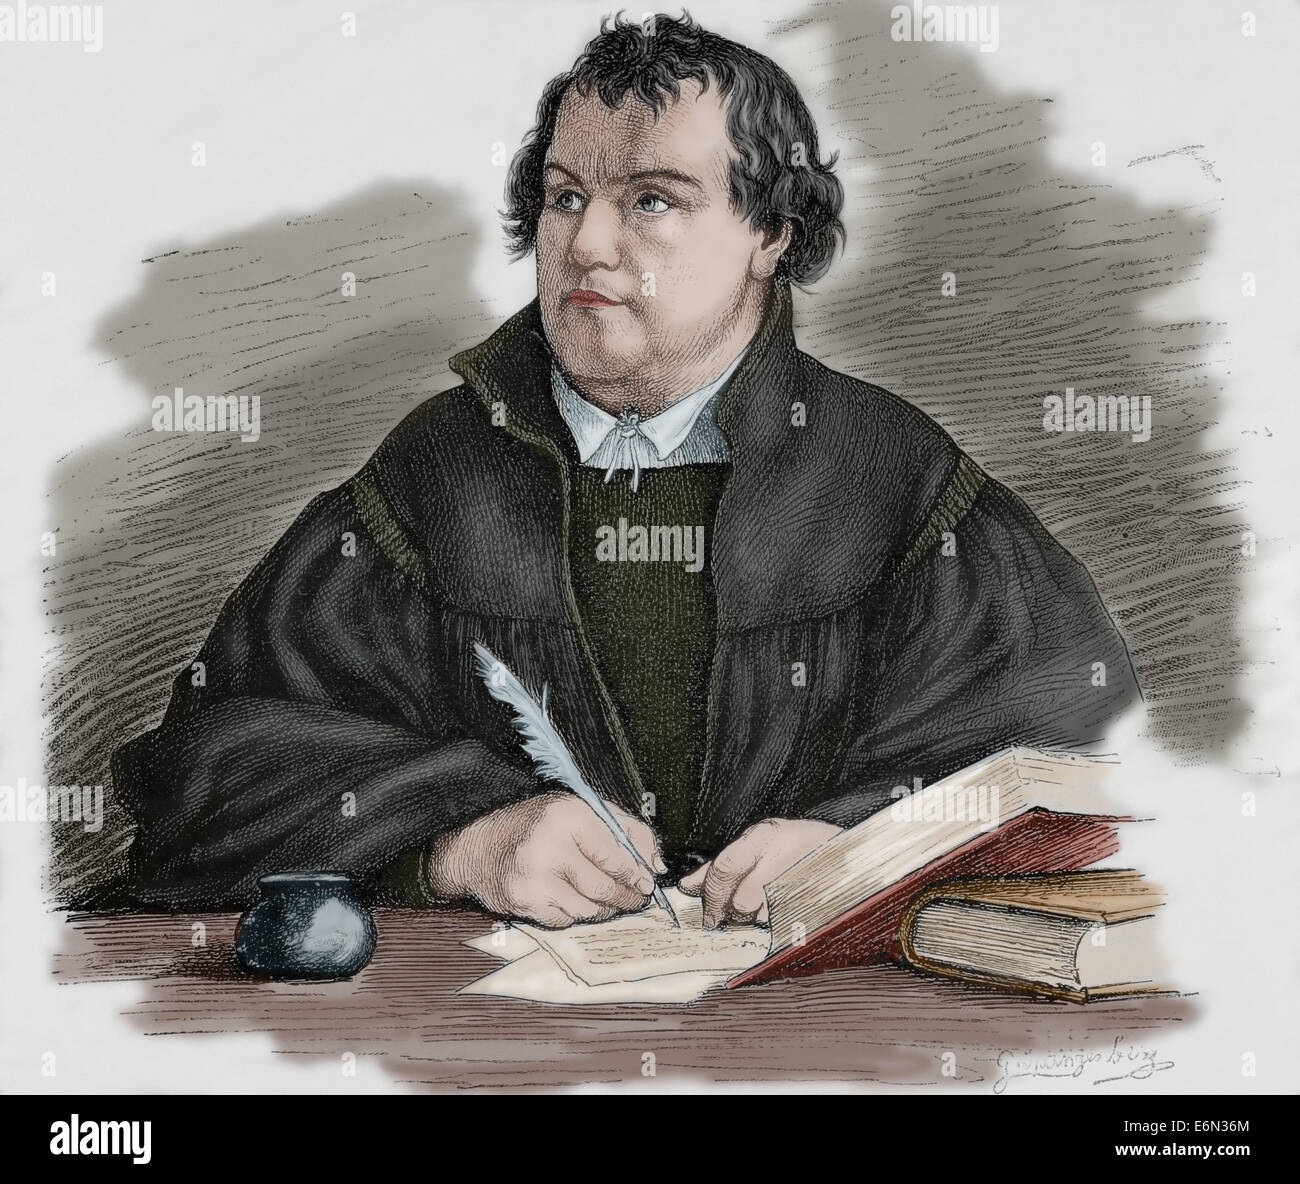 Martin Luther (1483-1546). German reformer. Engraving by G. Spangerberg in Germania, 1882. Colored. - Stock Image